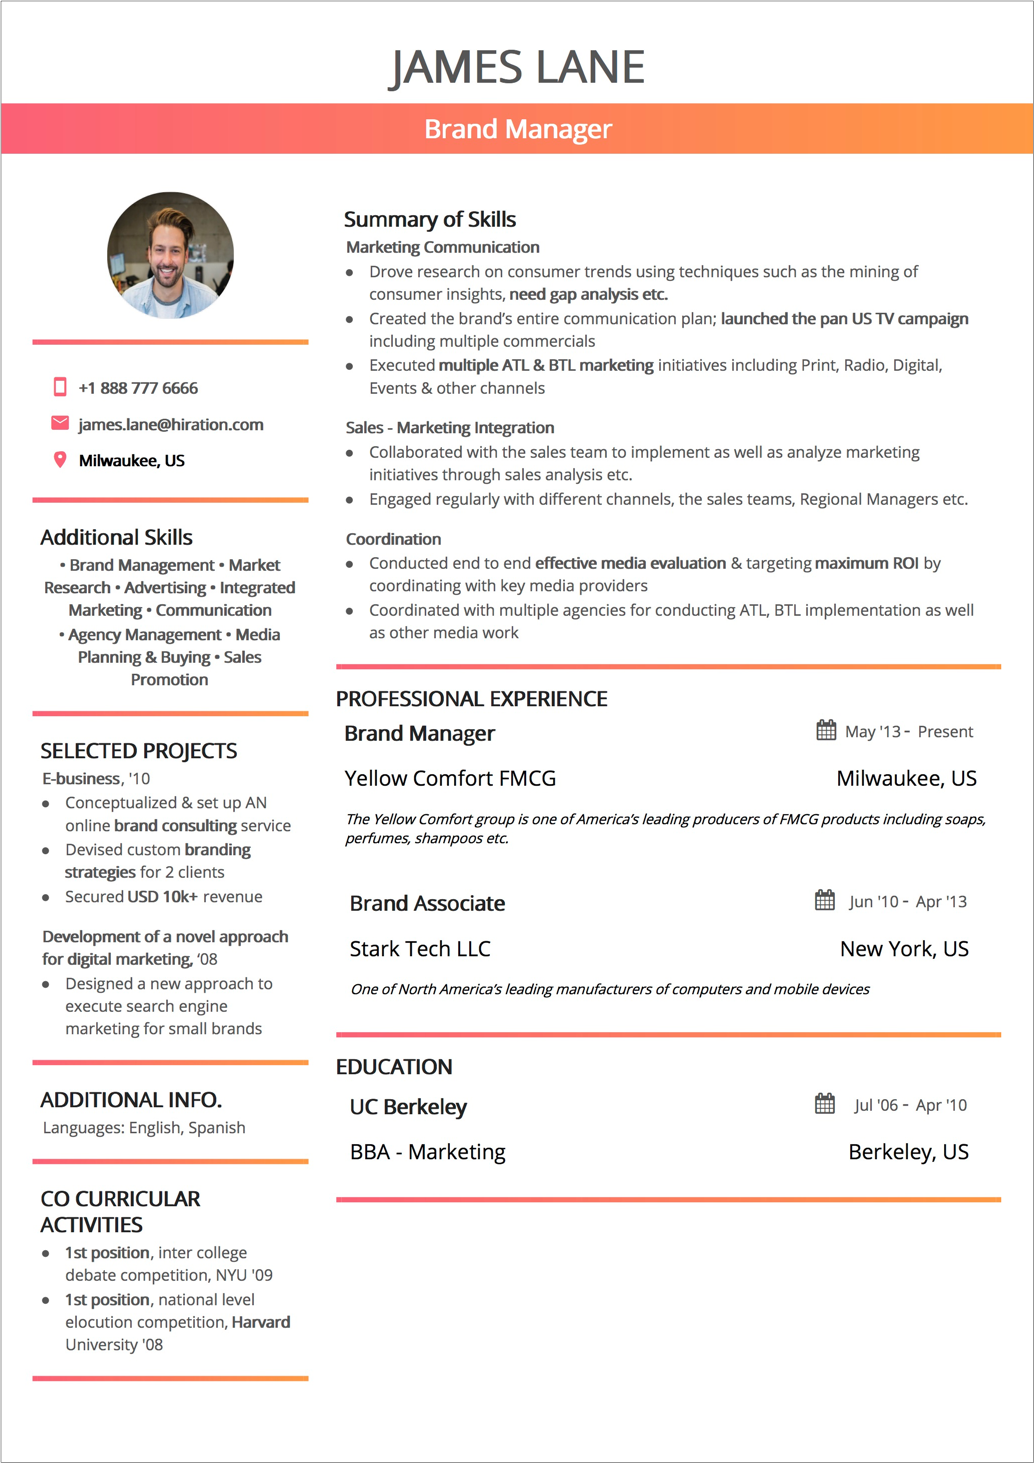 Functional Resume The 2020 Guide To Functional Resumes